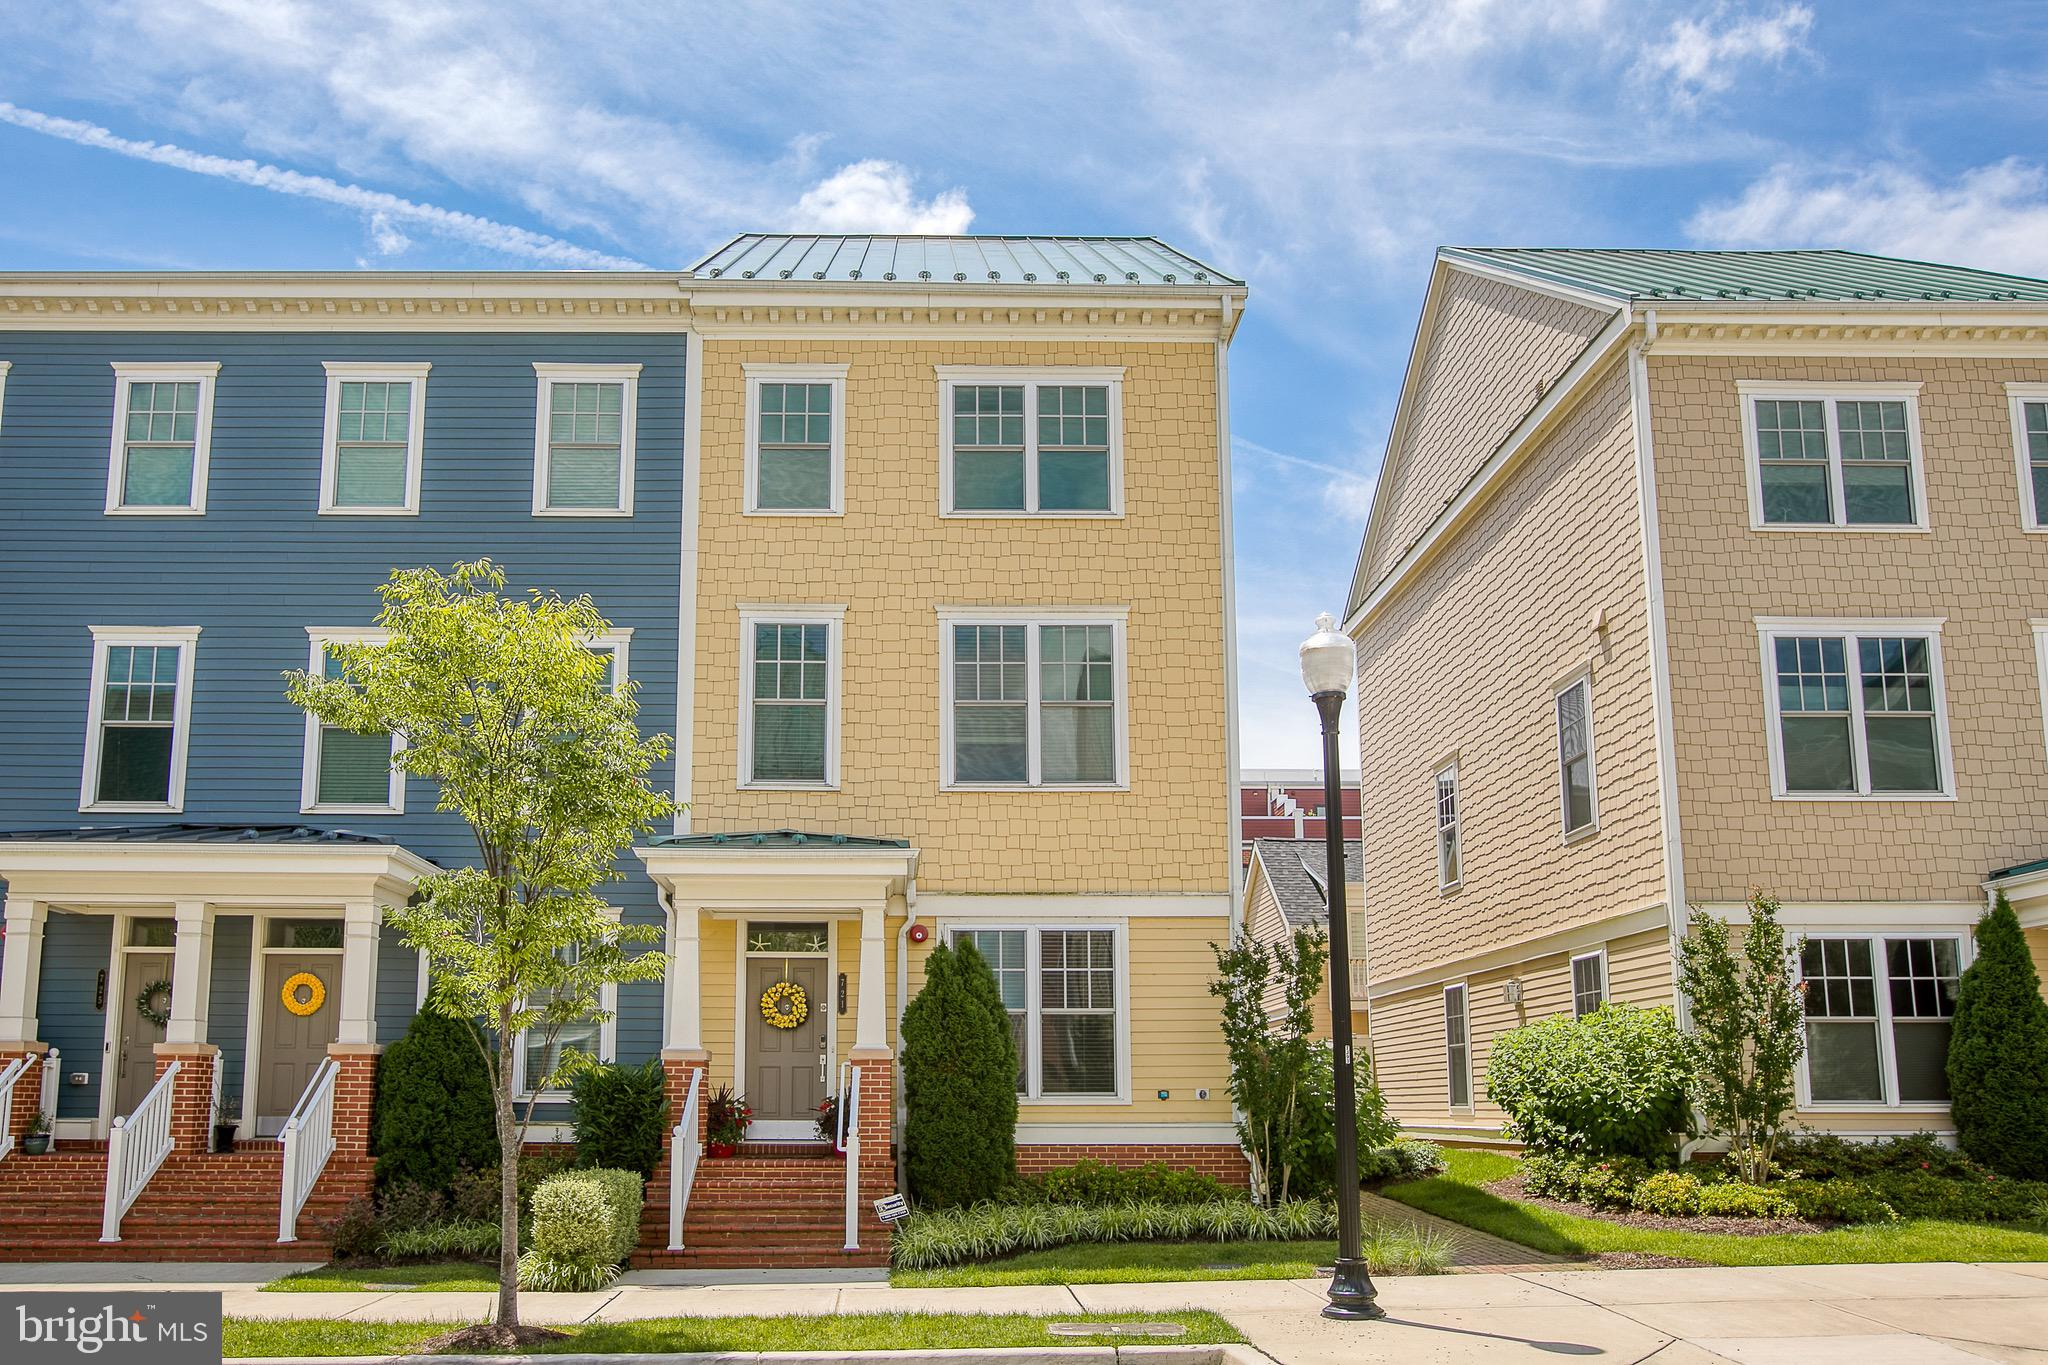 721 DIAMOND AVENUE, ALEXANDRIA, VA 22301